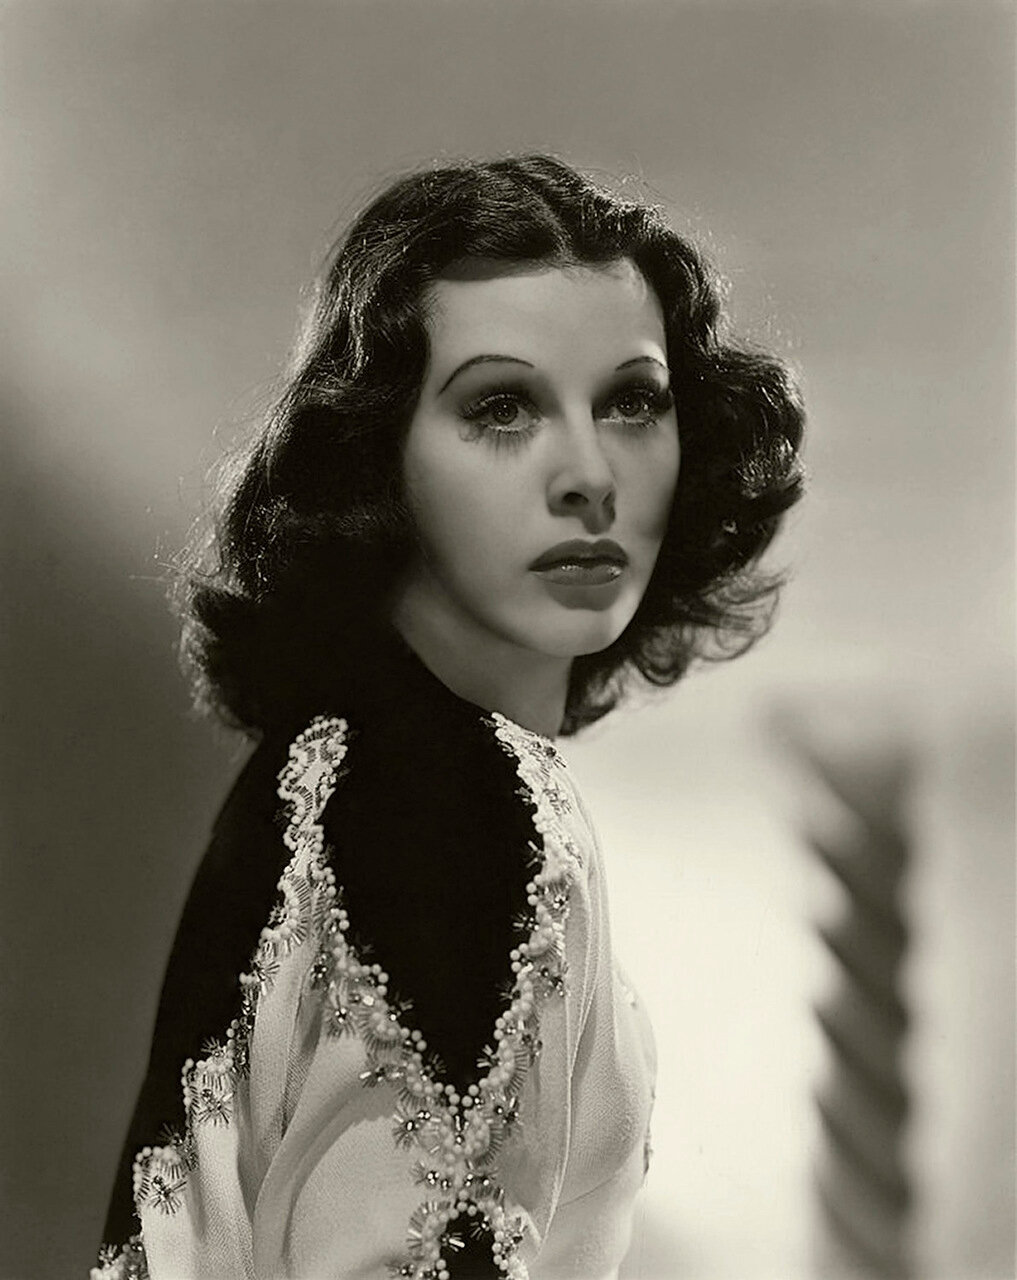 Hedy Lamarr 1930s - by Clarence Sinclair Bull